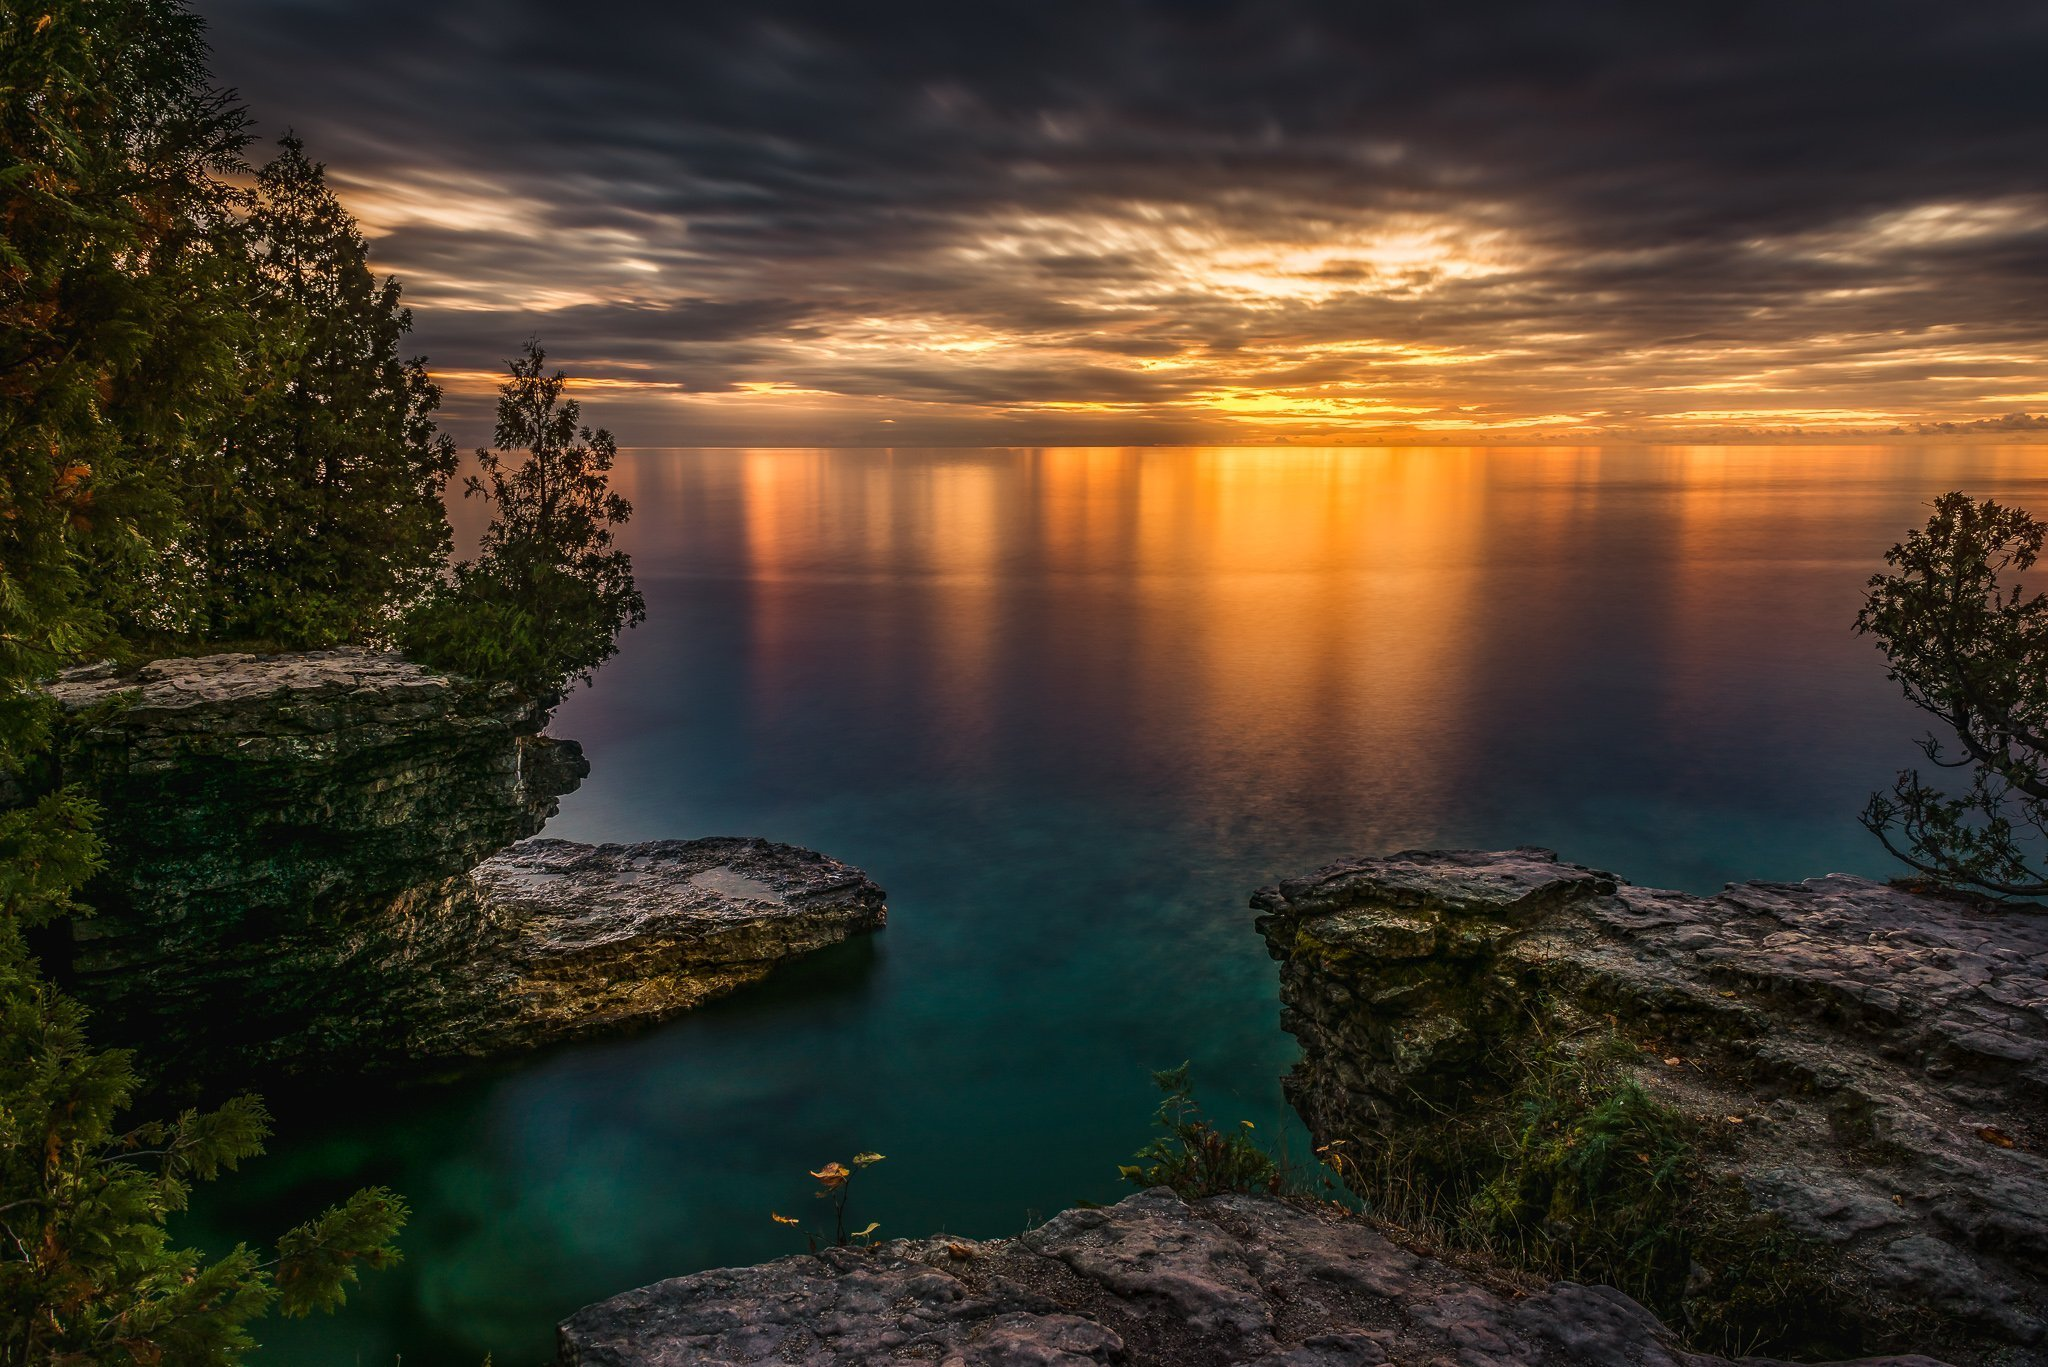 sunrise at cave point county park in door county, wisconsin